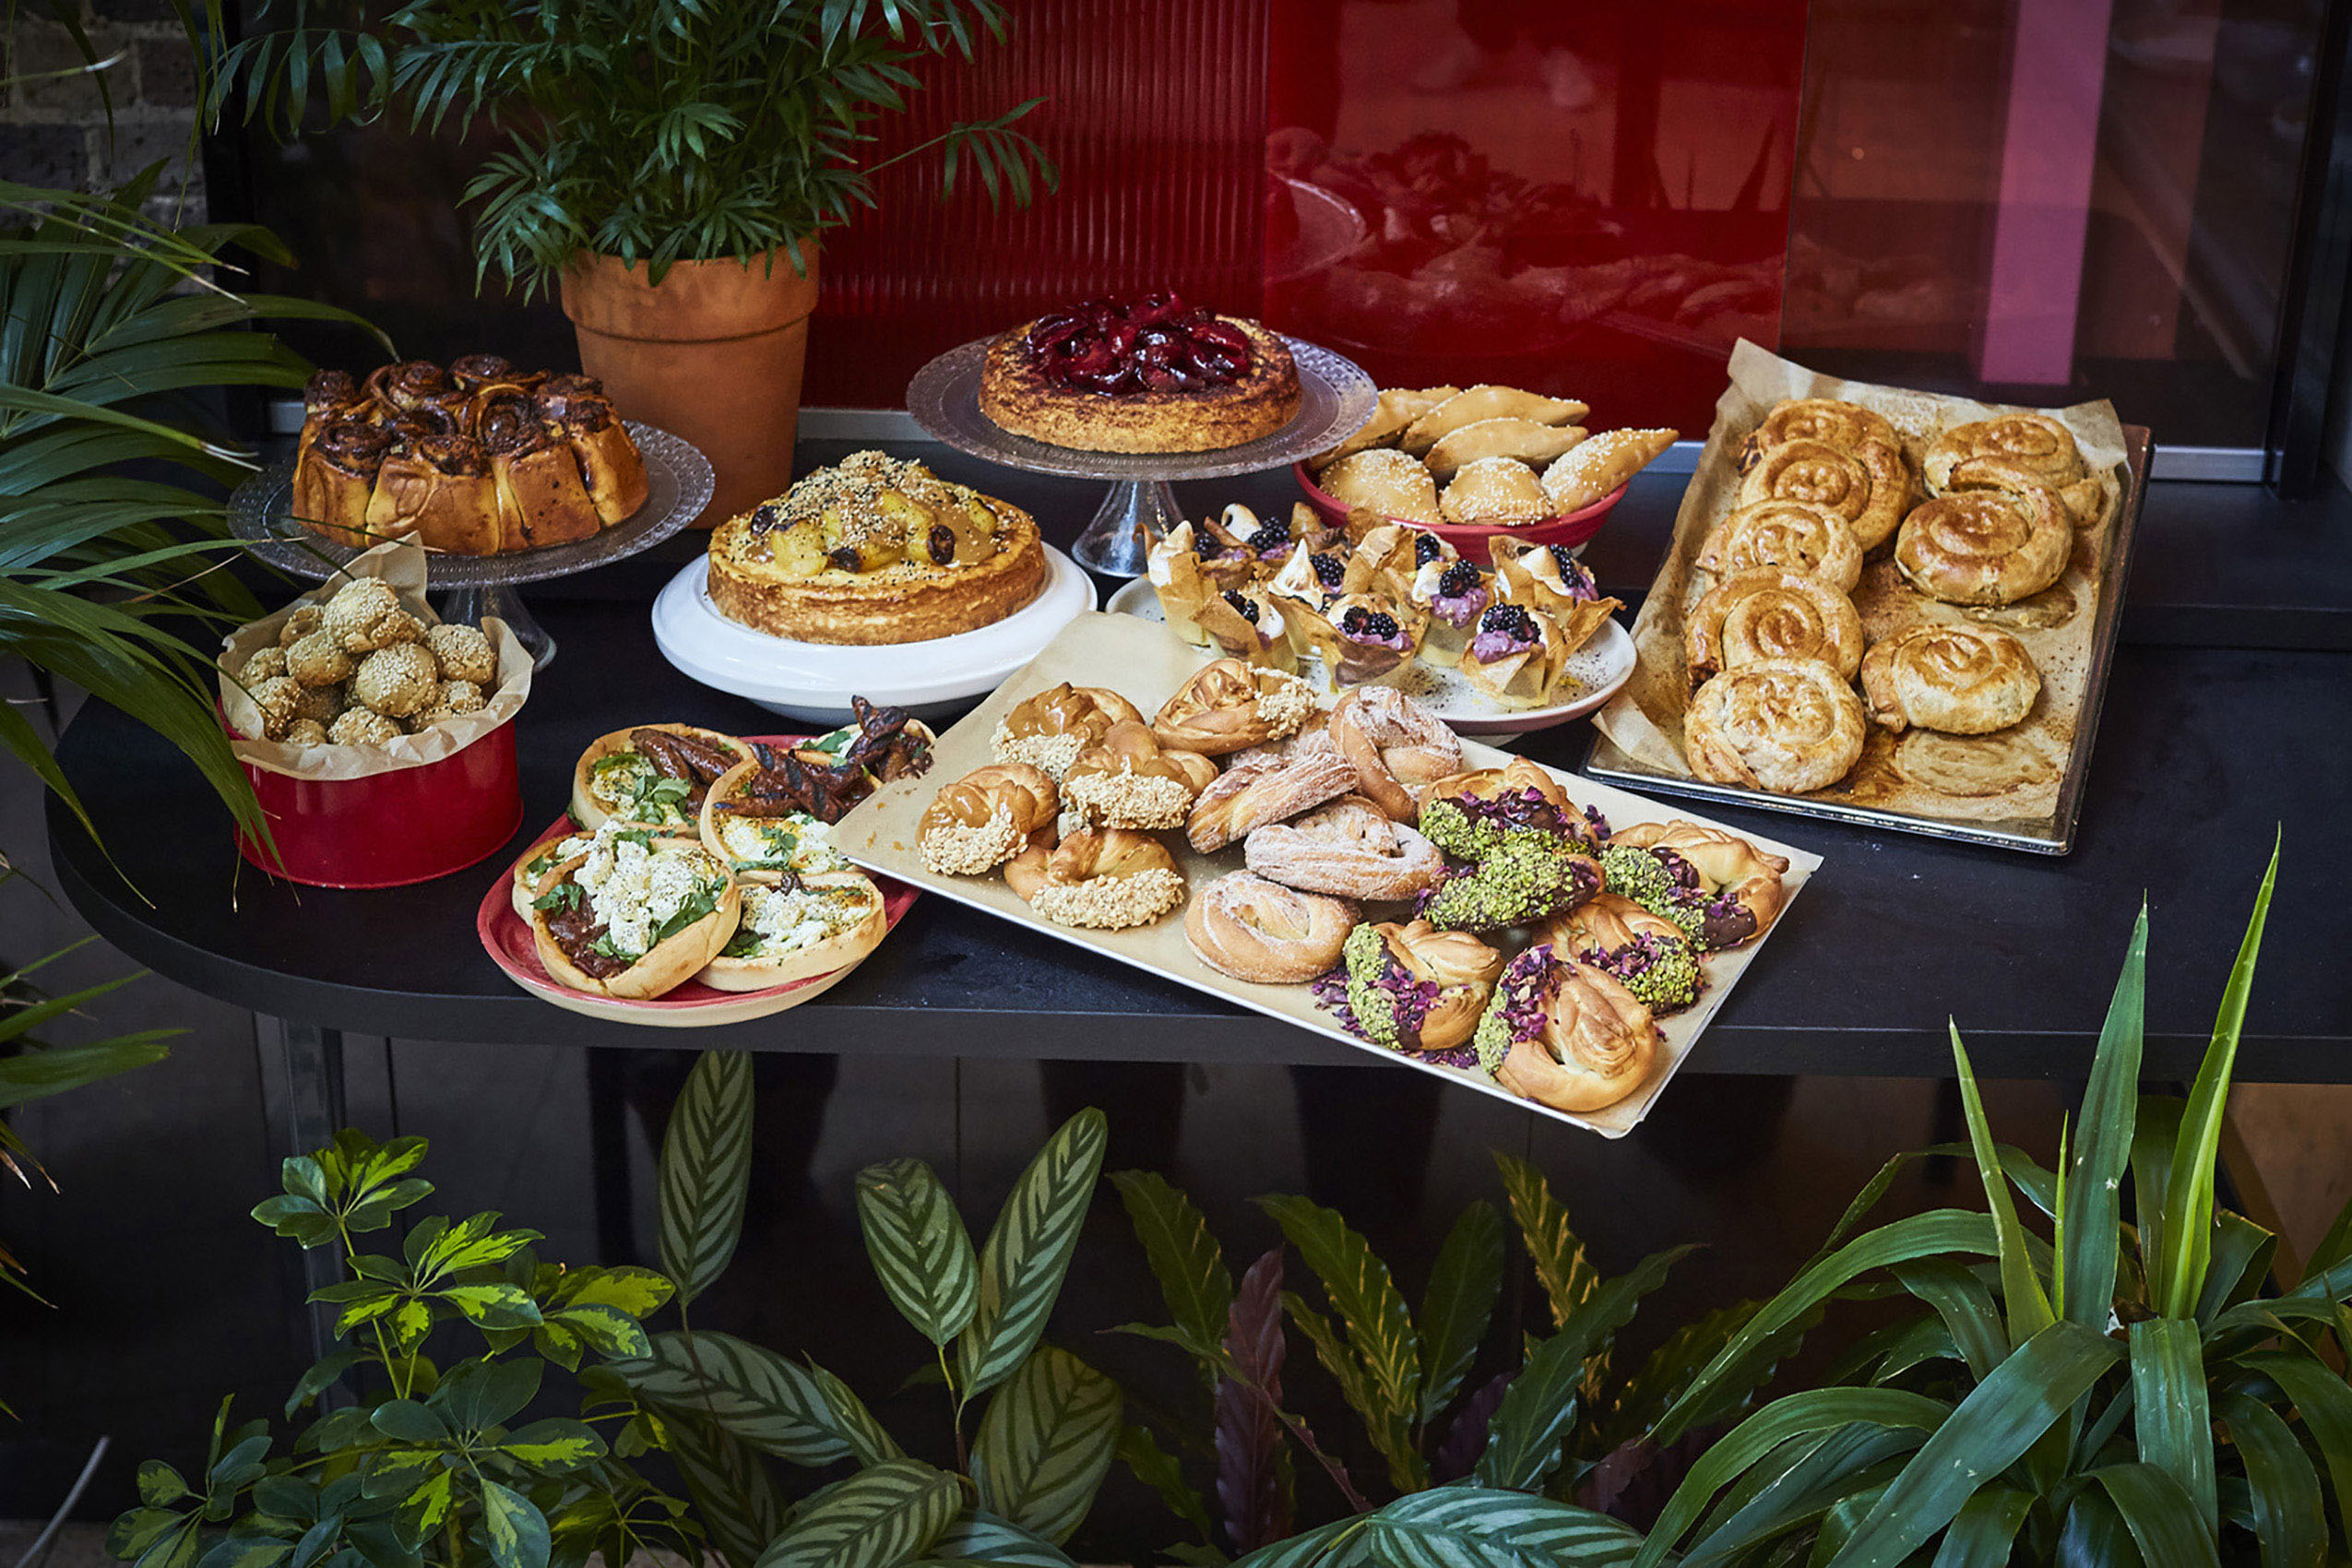 SteveRyan_Photographer_Food_BreakfastBuffet_150